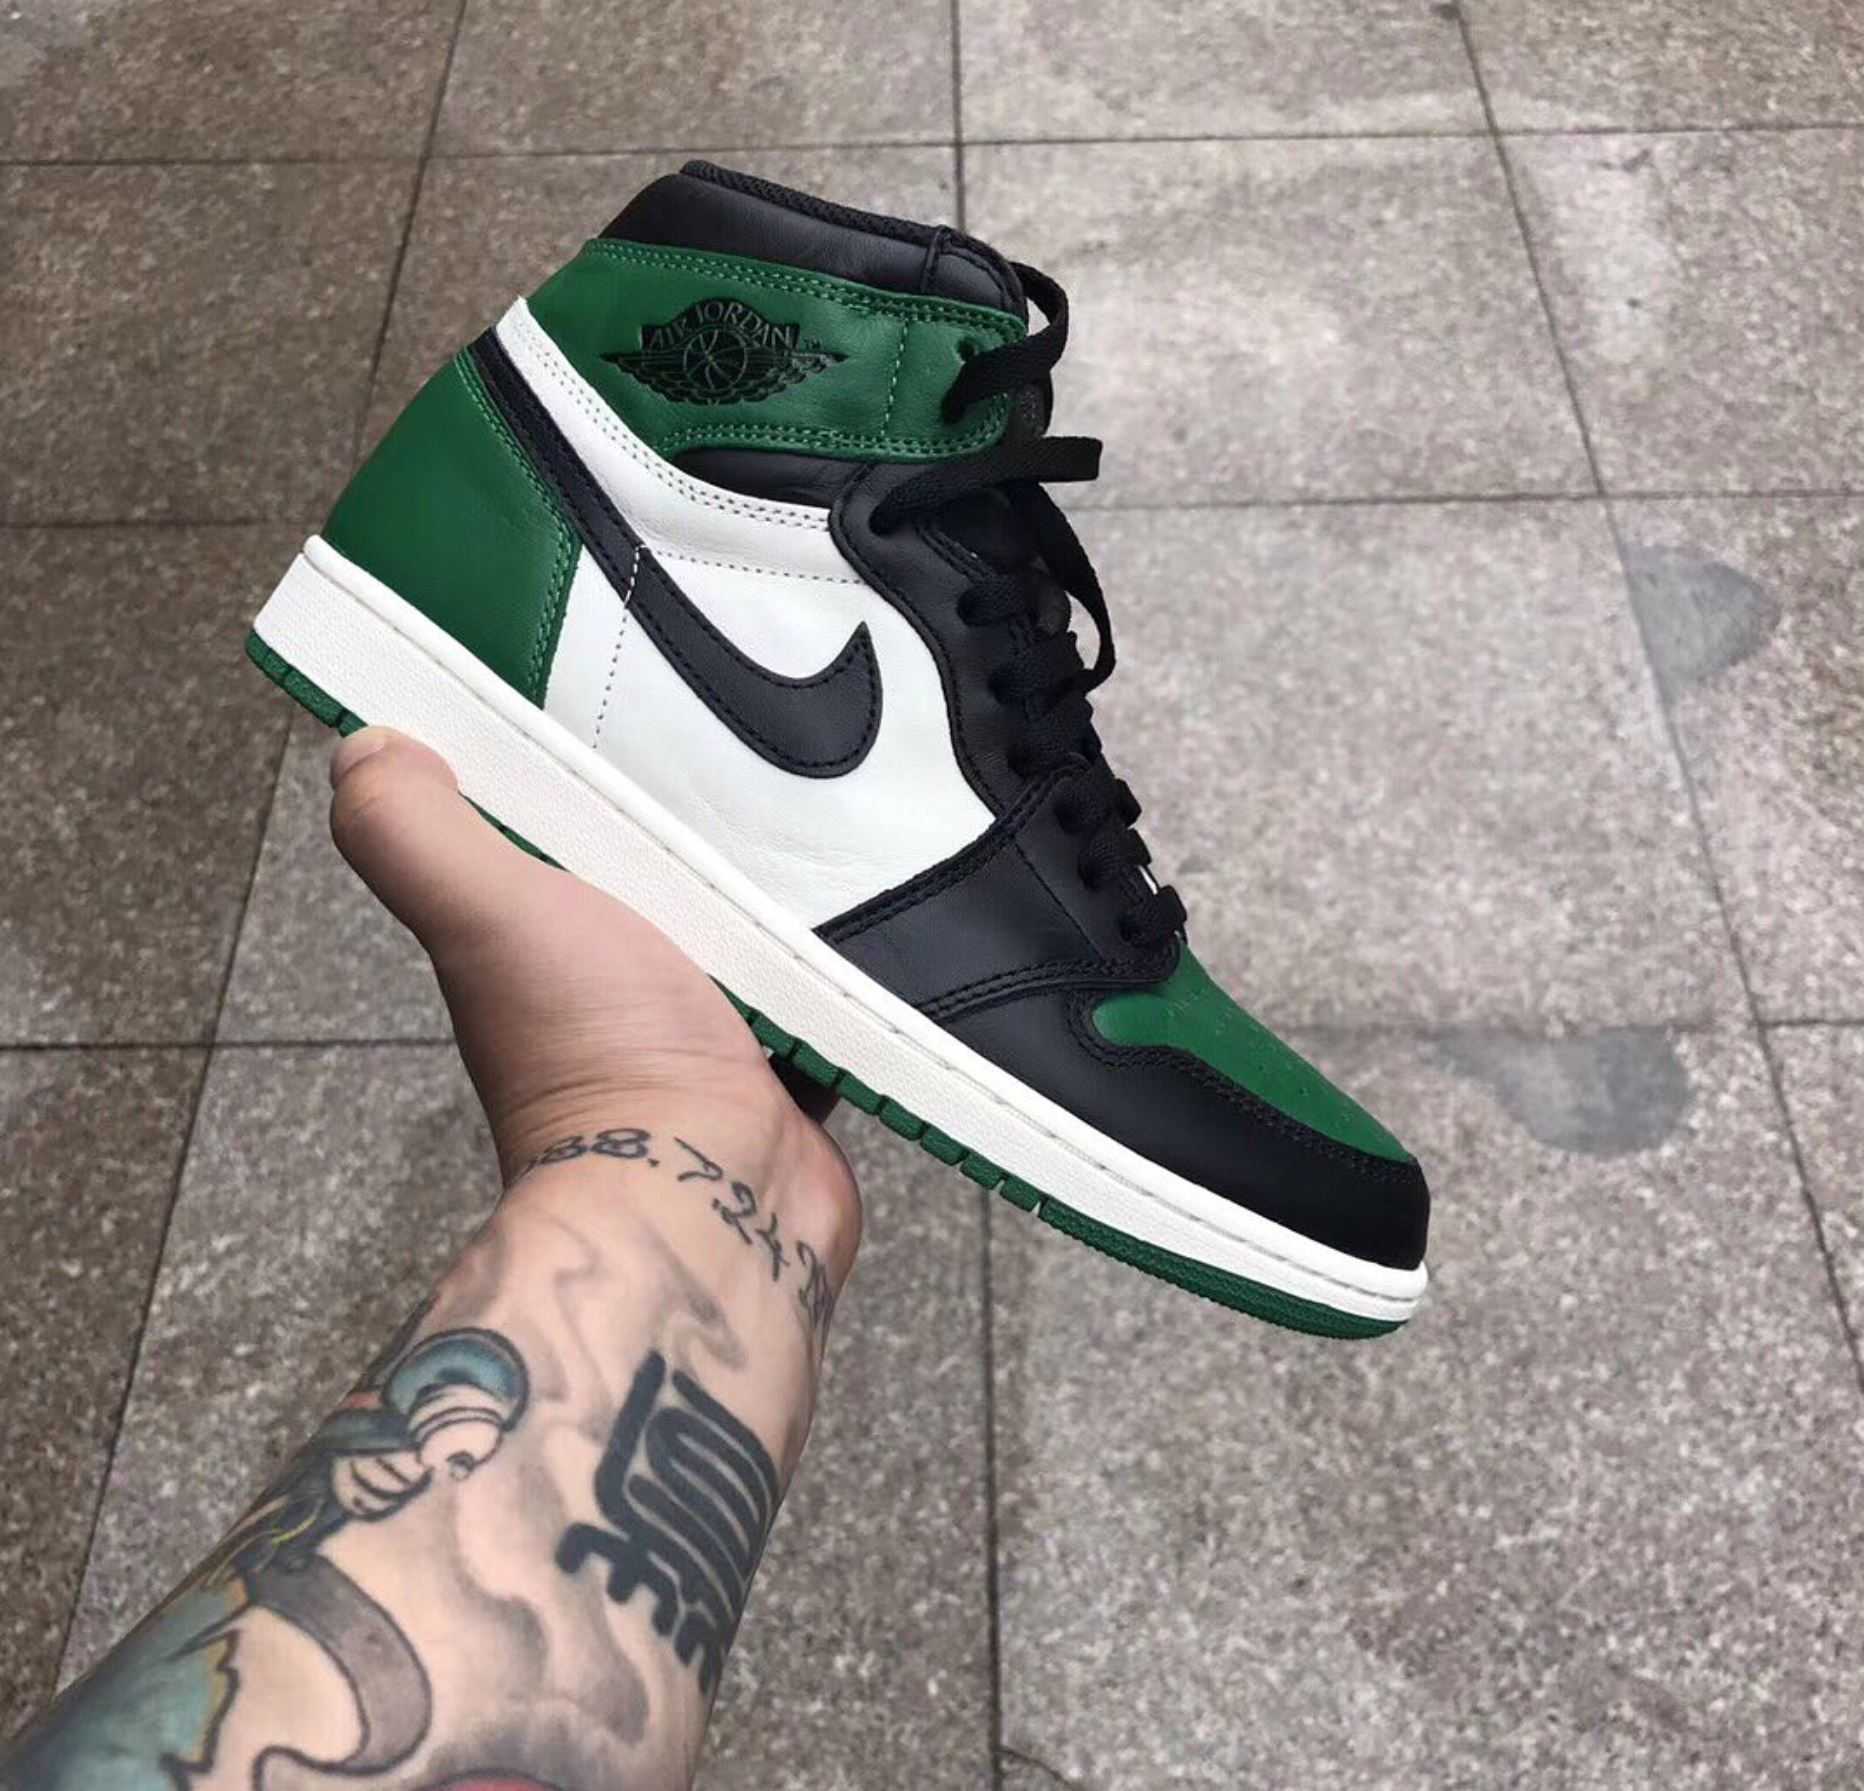 sports shoes b1edf 06ab0 First Look at the Air Jordan 1 'Pine Green' - WearTesters